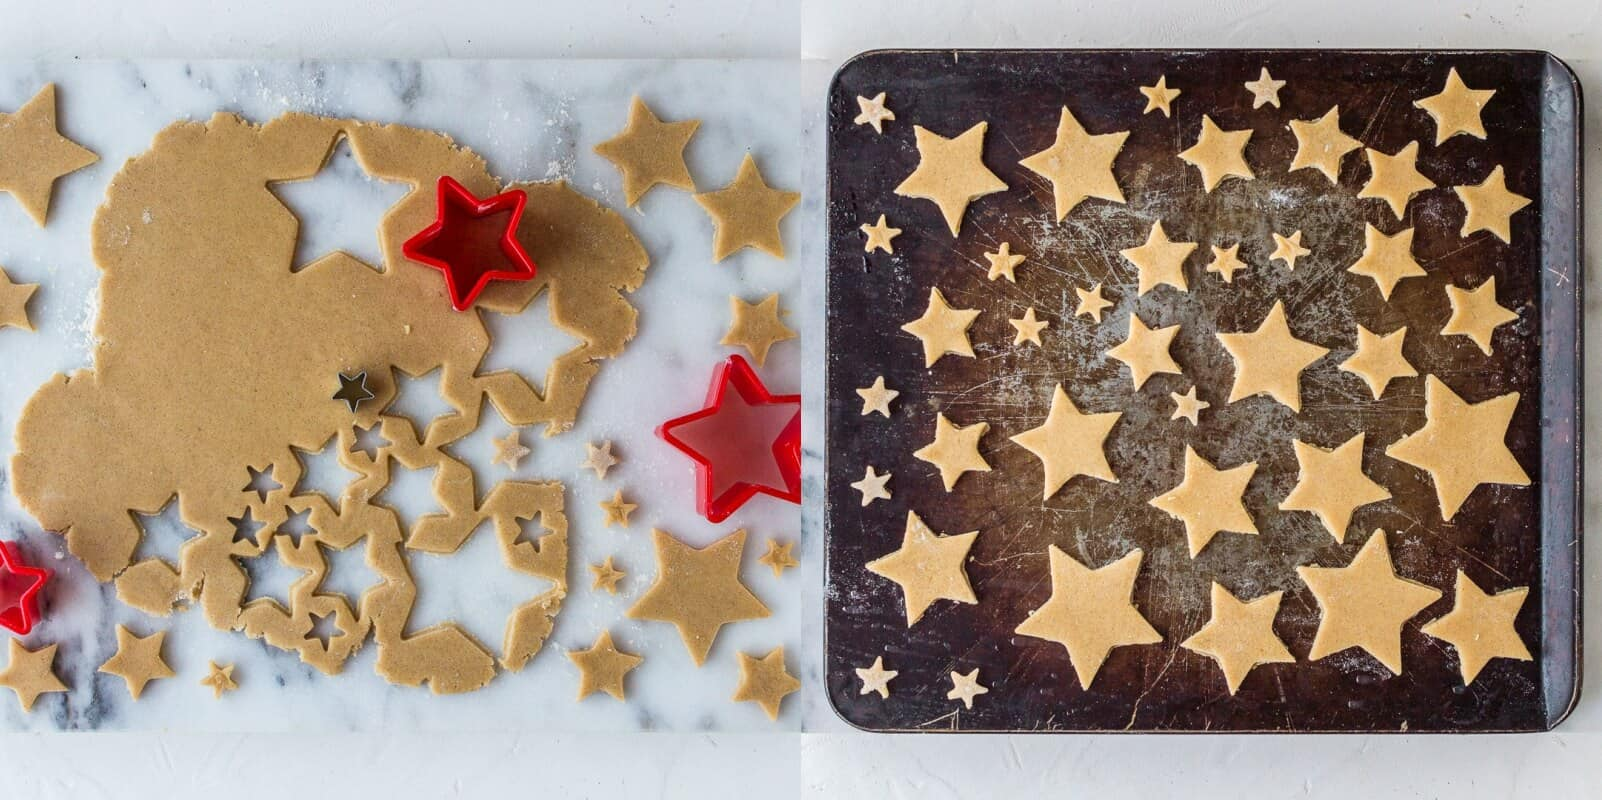 starry mince pie tart step 5 - making the shortbread stars